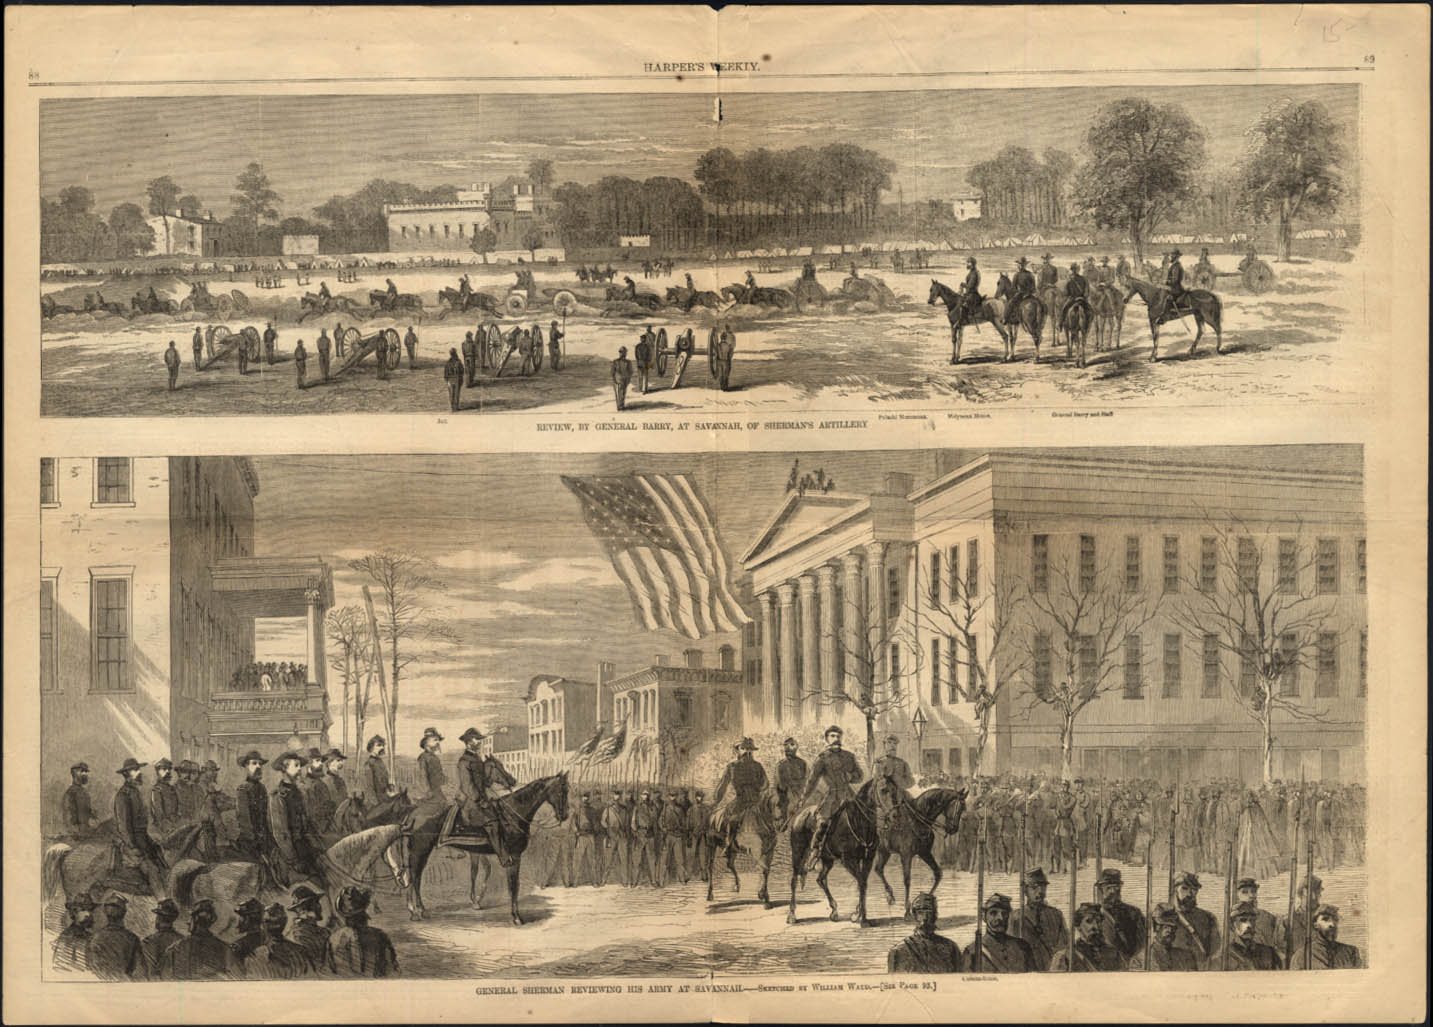 Gen Barry & Gen Sherman Review Troops at Savannah 1865